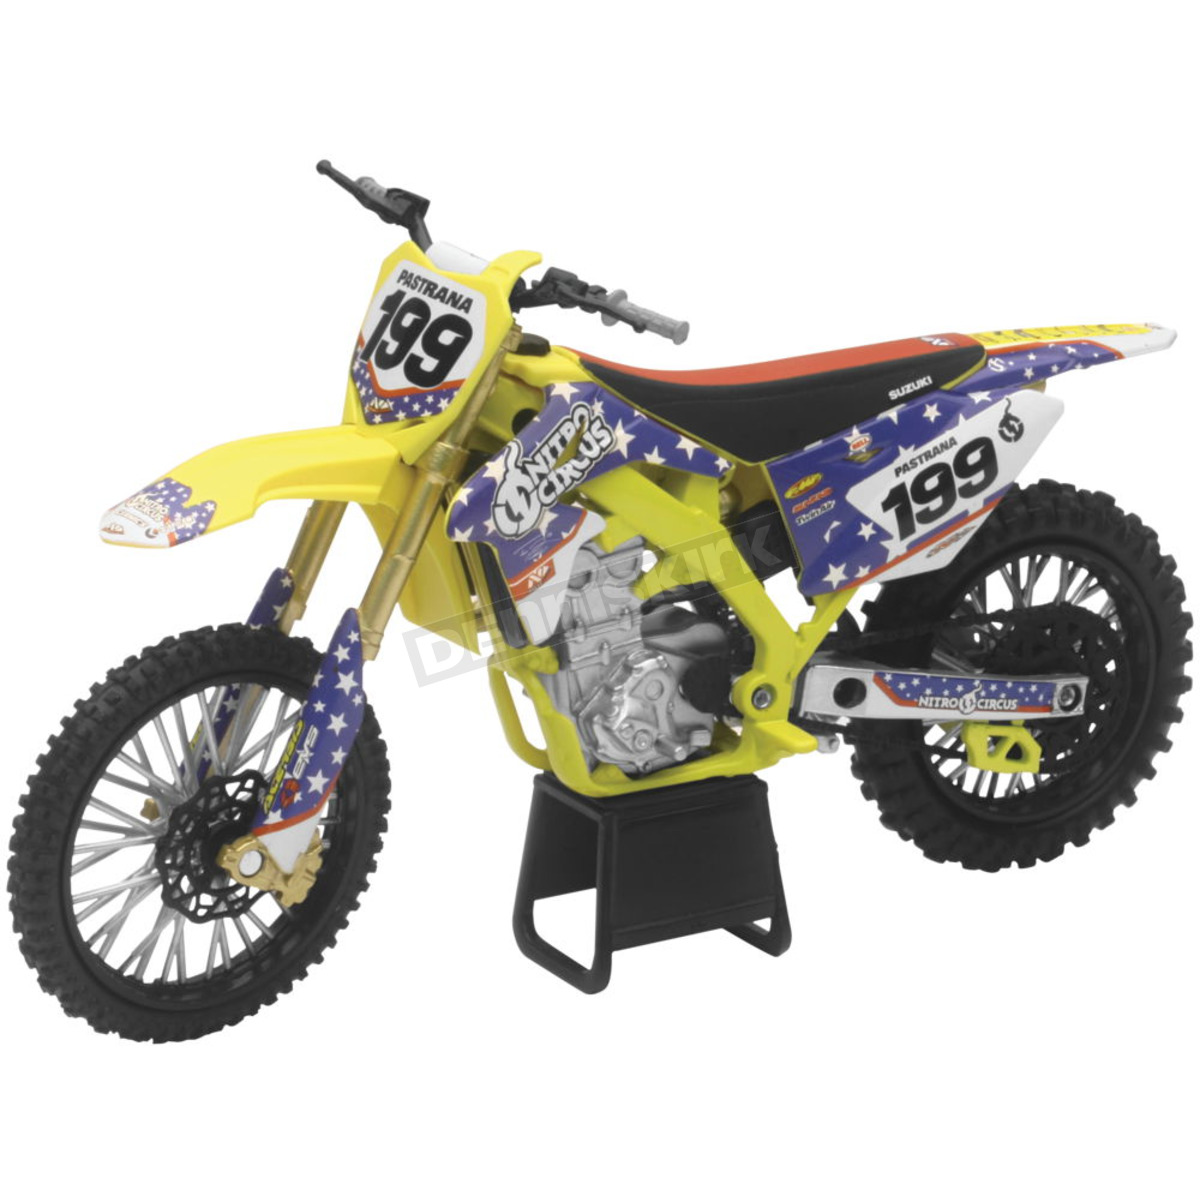 Motocross Garage Accessories New Ray Toys Travis Pastrana Dirt Bike 1 12 Scale Die Cast Model 57993